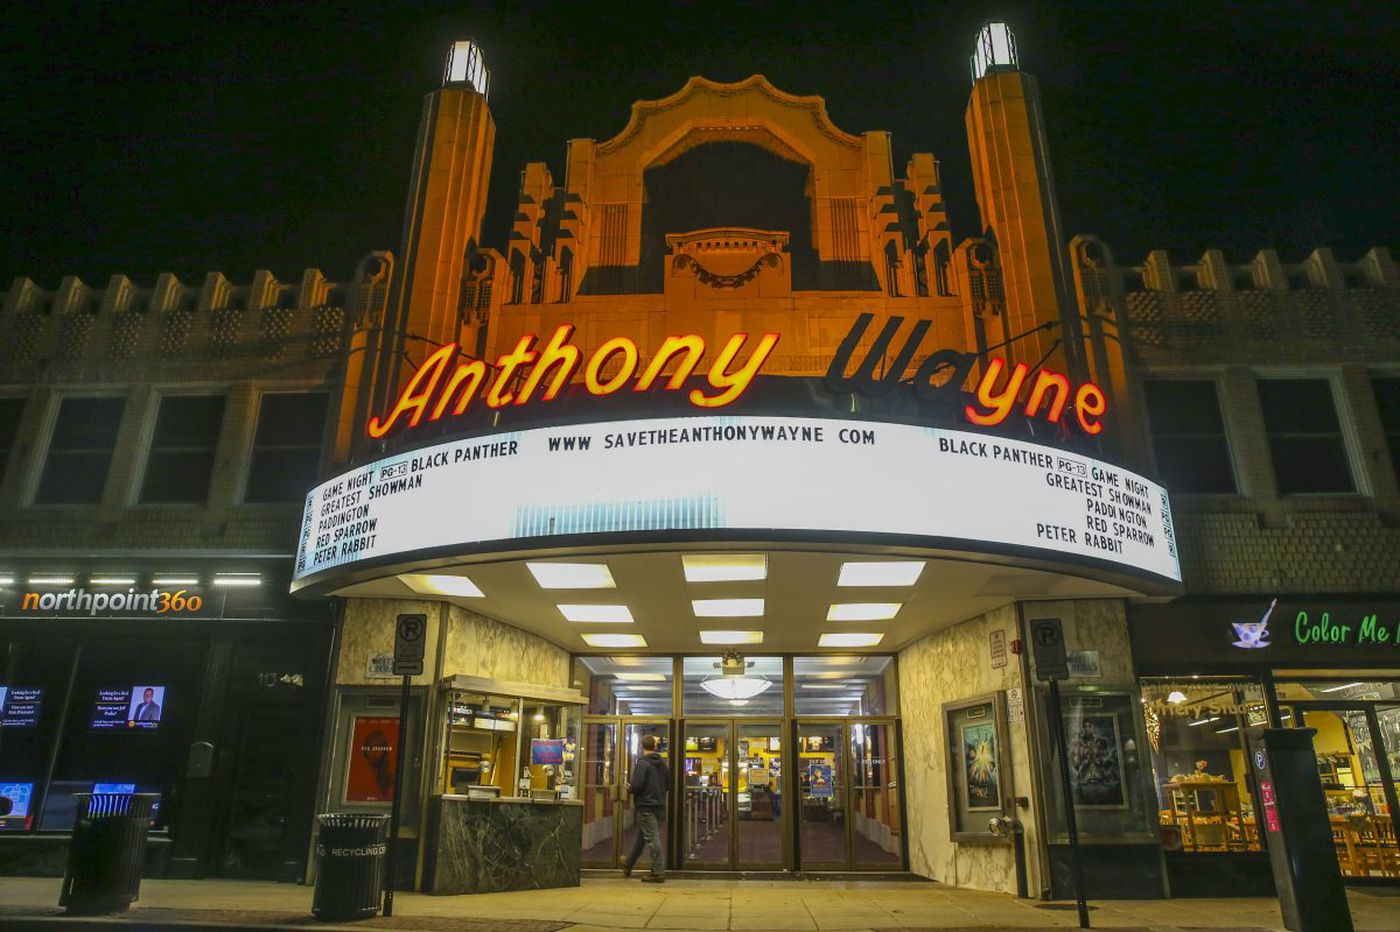 In the Netflix age, some small suburban theaters have found